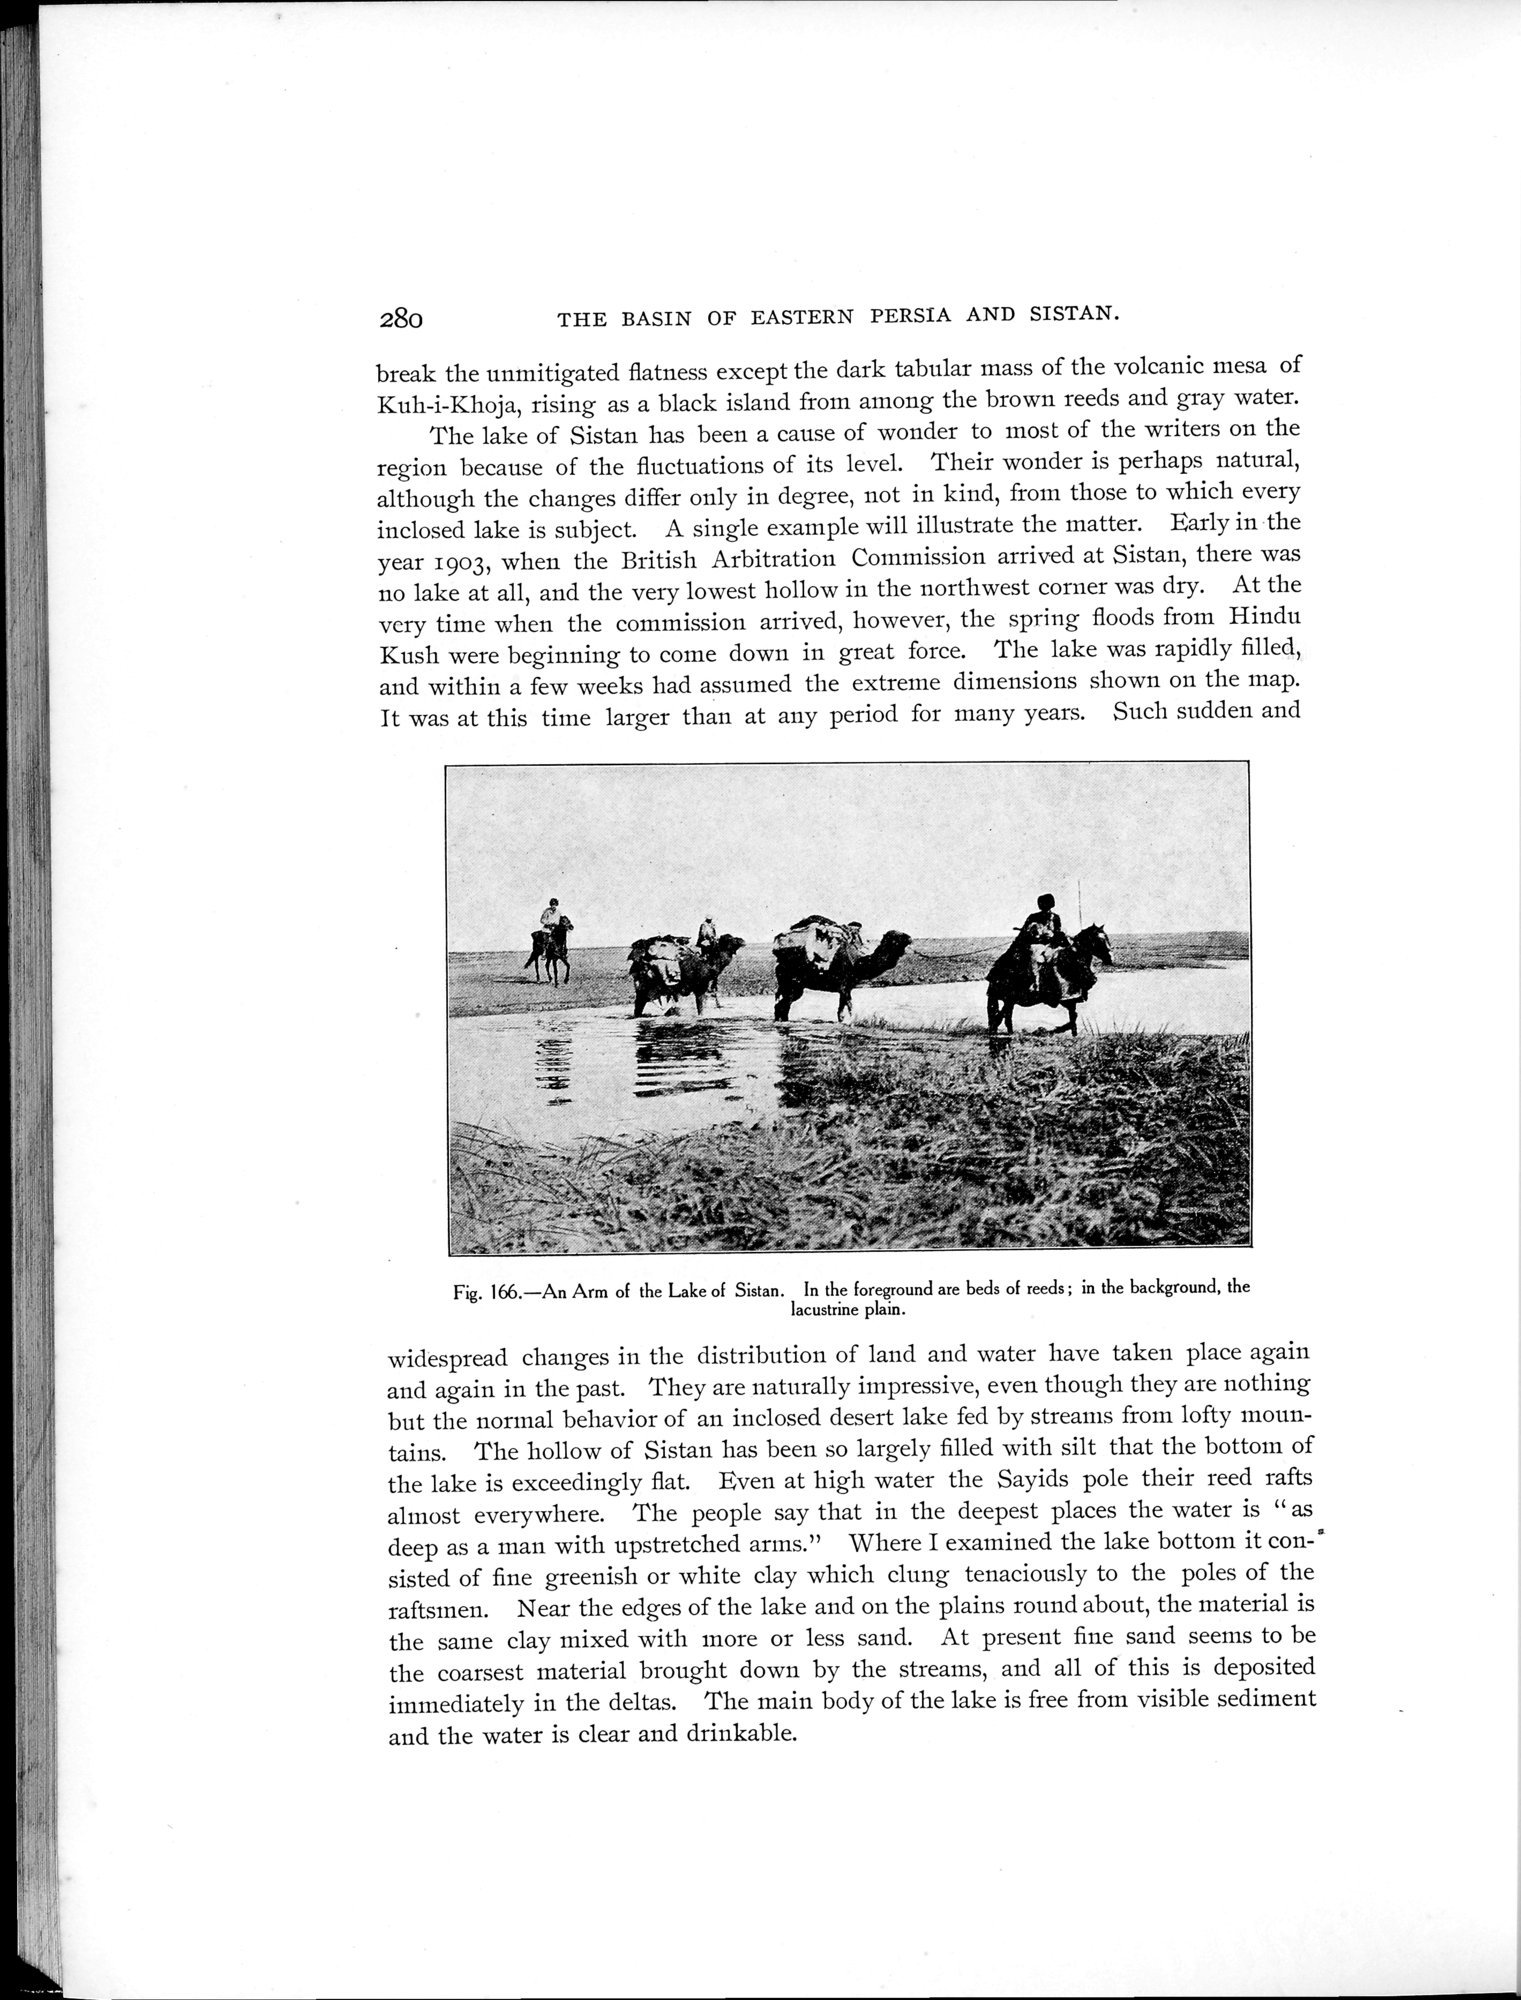 Explorations in Turkestan 1903 : vol.1 / Page 312 (Grayscale High Resolution Image)